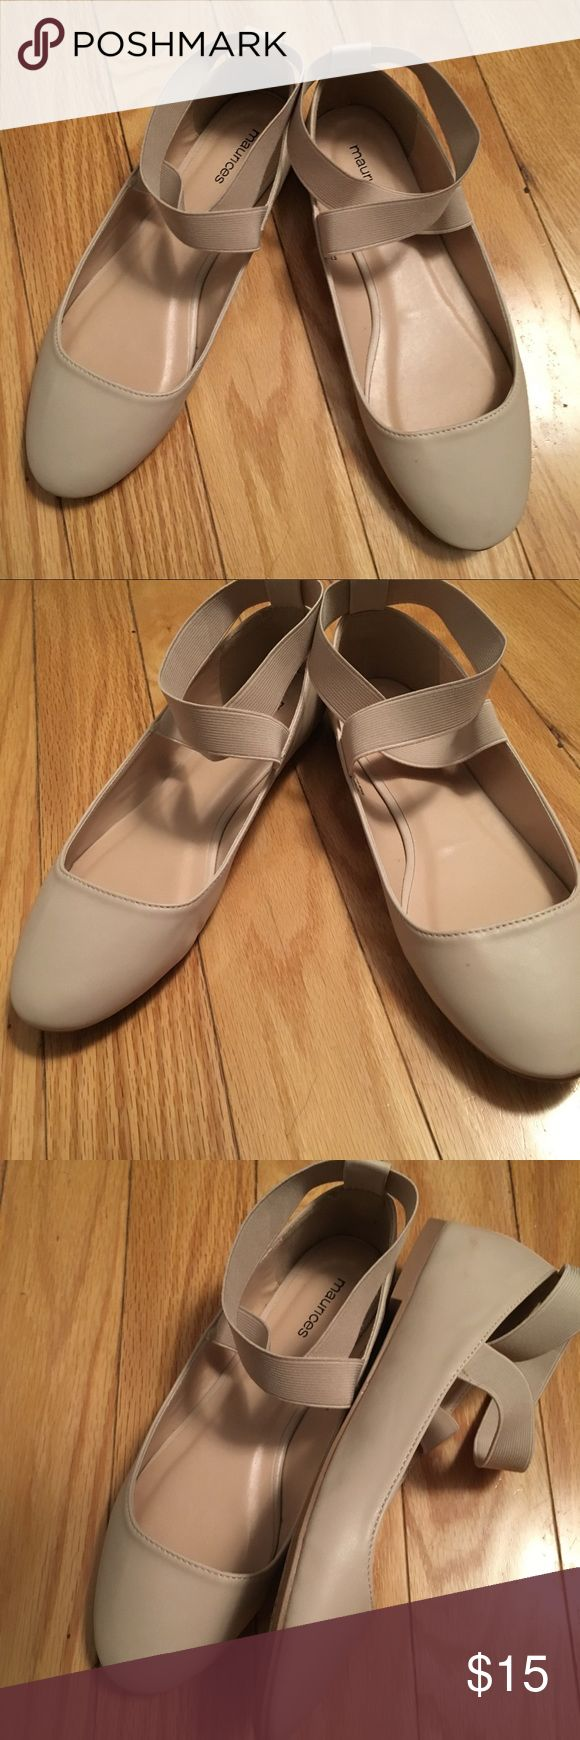 • Cream Maurices Flats • Cream/light tan colored ballet flats from Maurices. Never worn only tried on! Super cute and comfy! Maurices Shoes Flats & Loafers